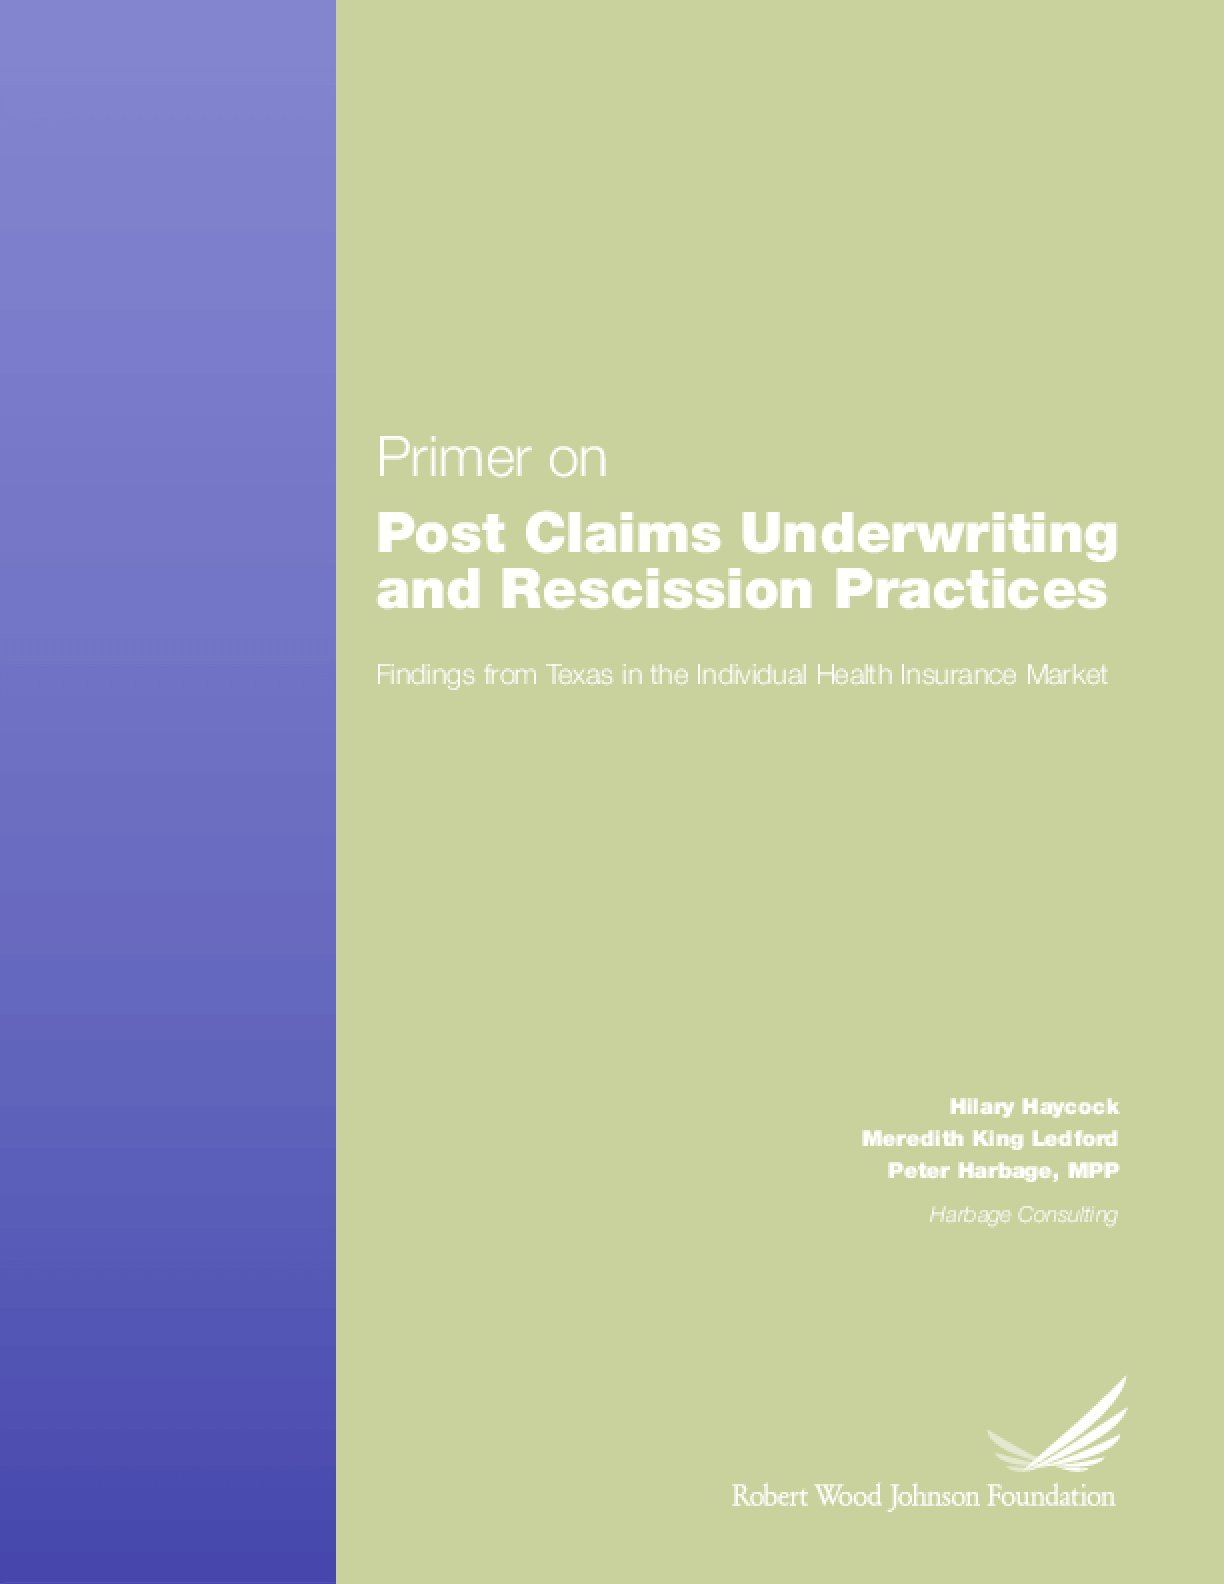 Primer on Post Claims Underwriting and Rescission Practices: Findings From Texas in the Individual Health Insurance Market